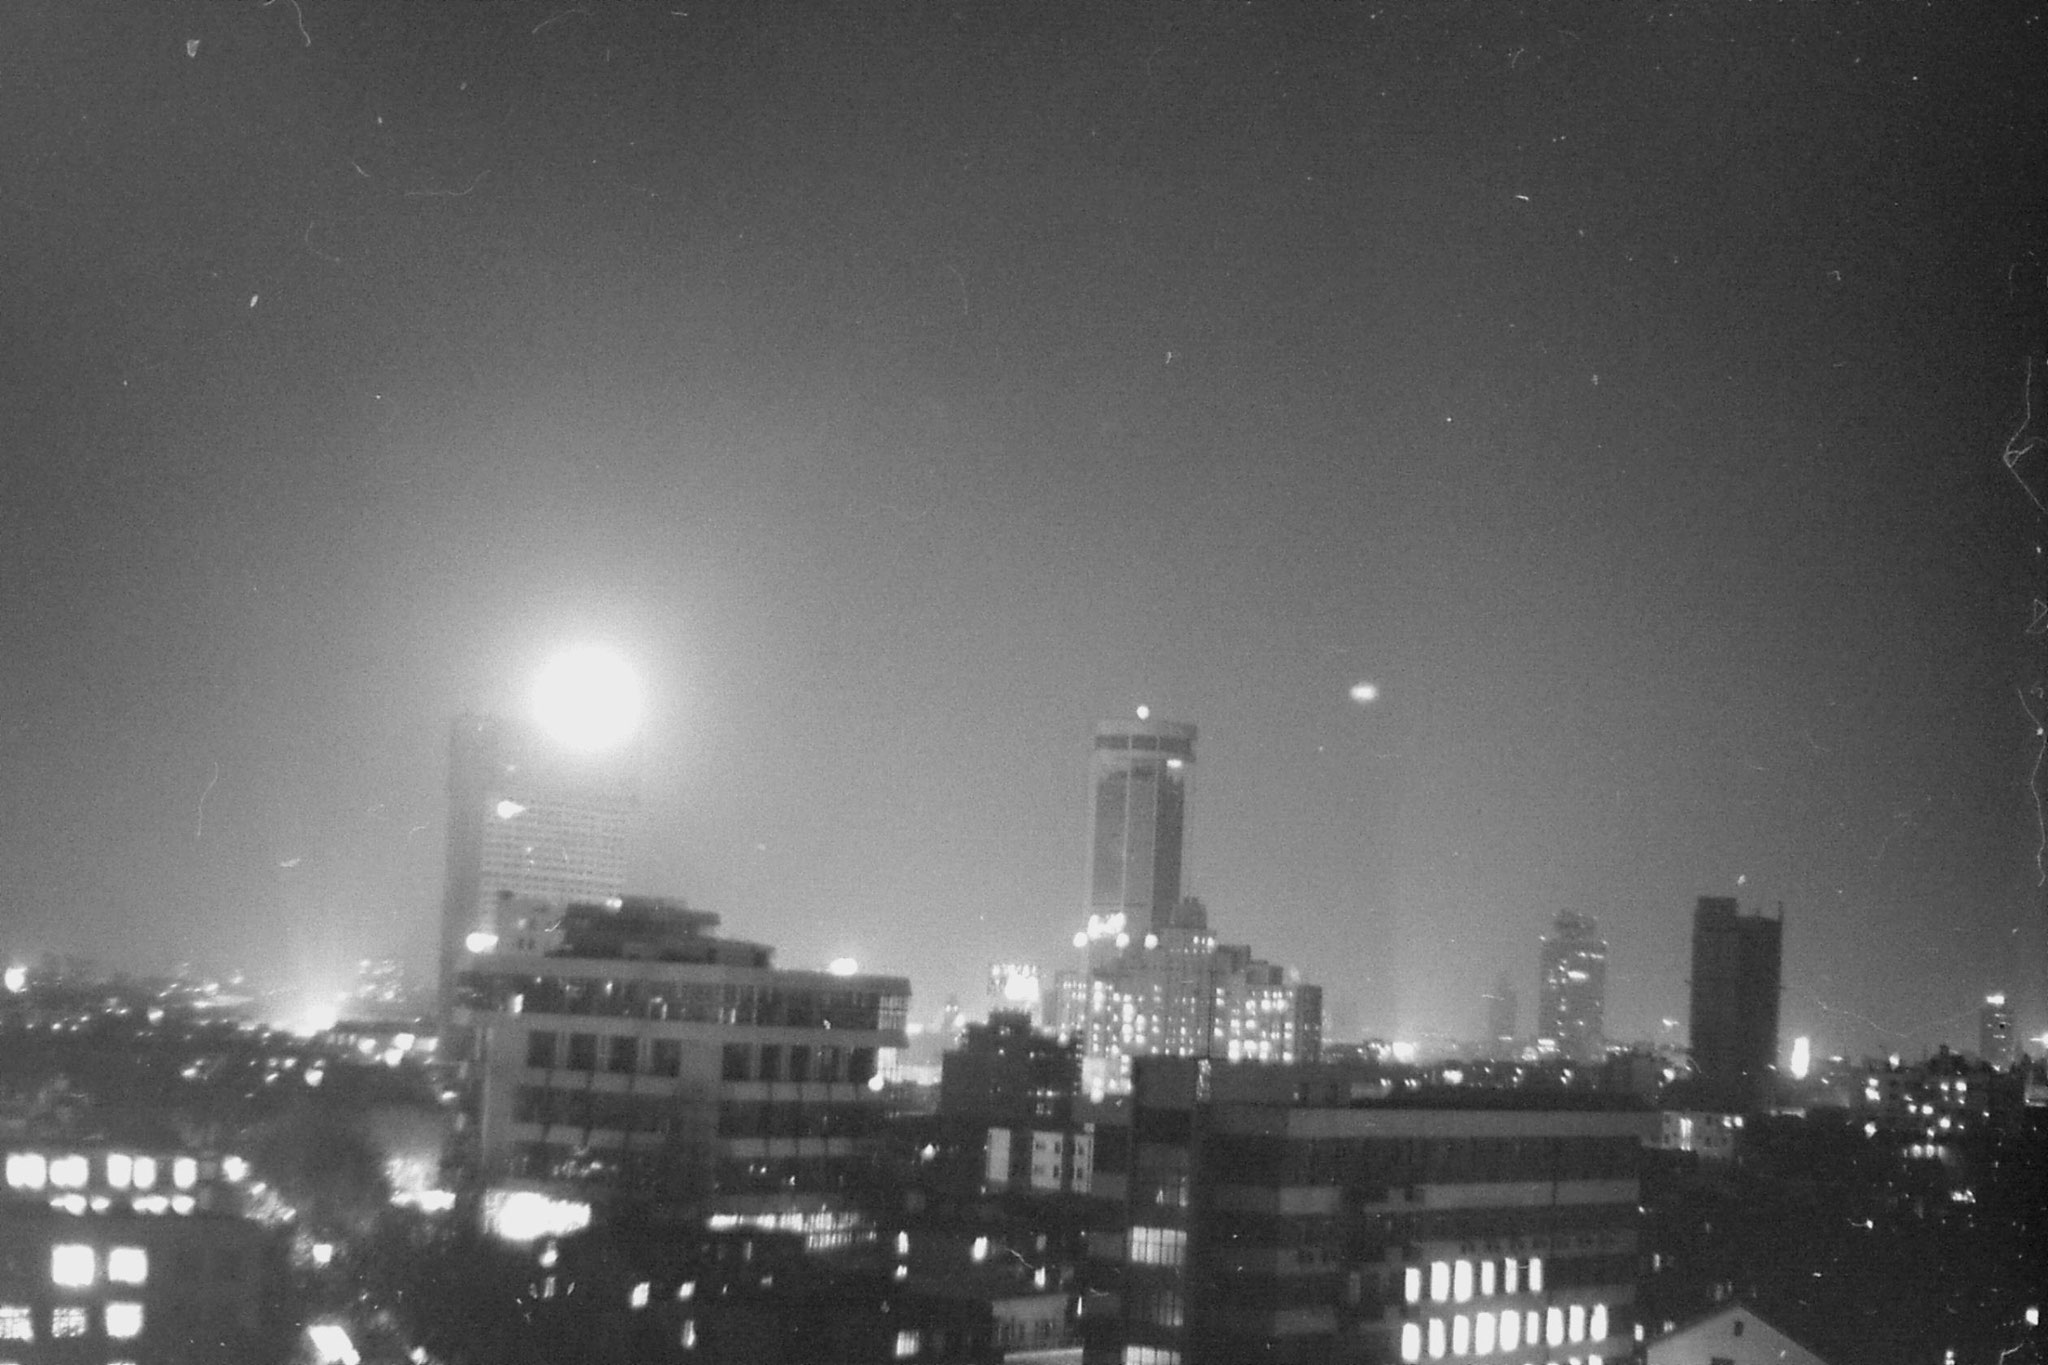 15/12/1988: 30: night view of Shanghai